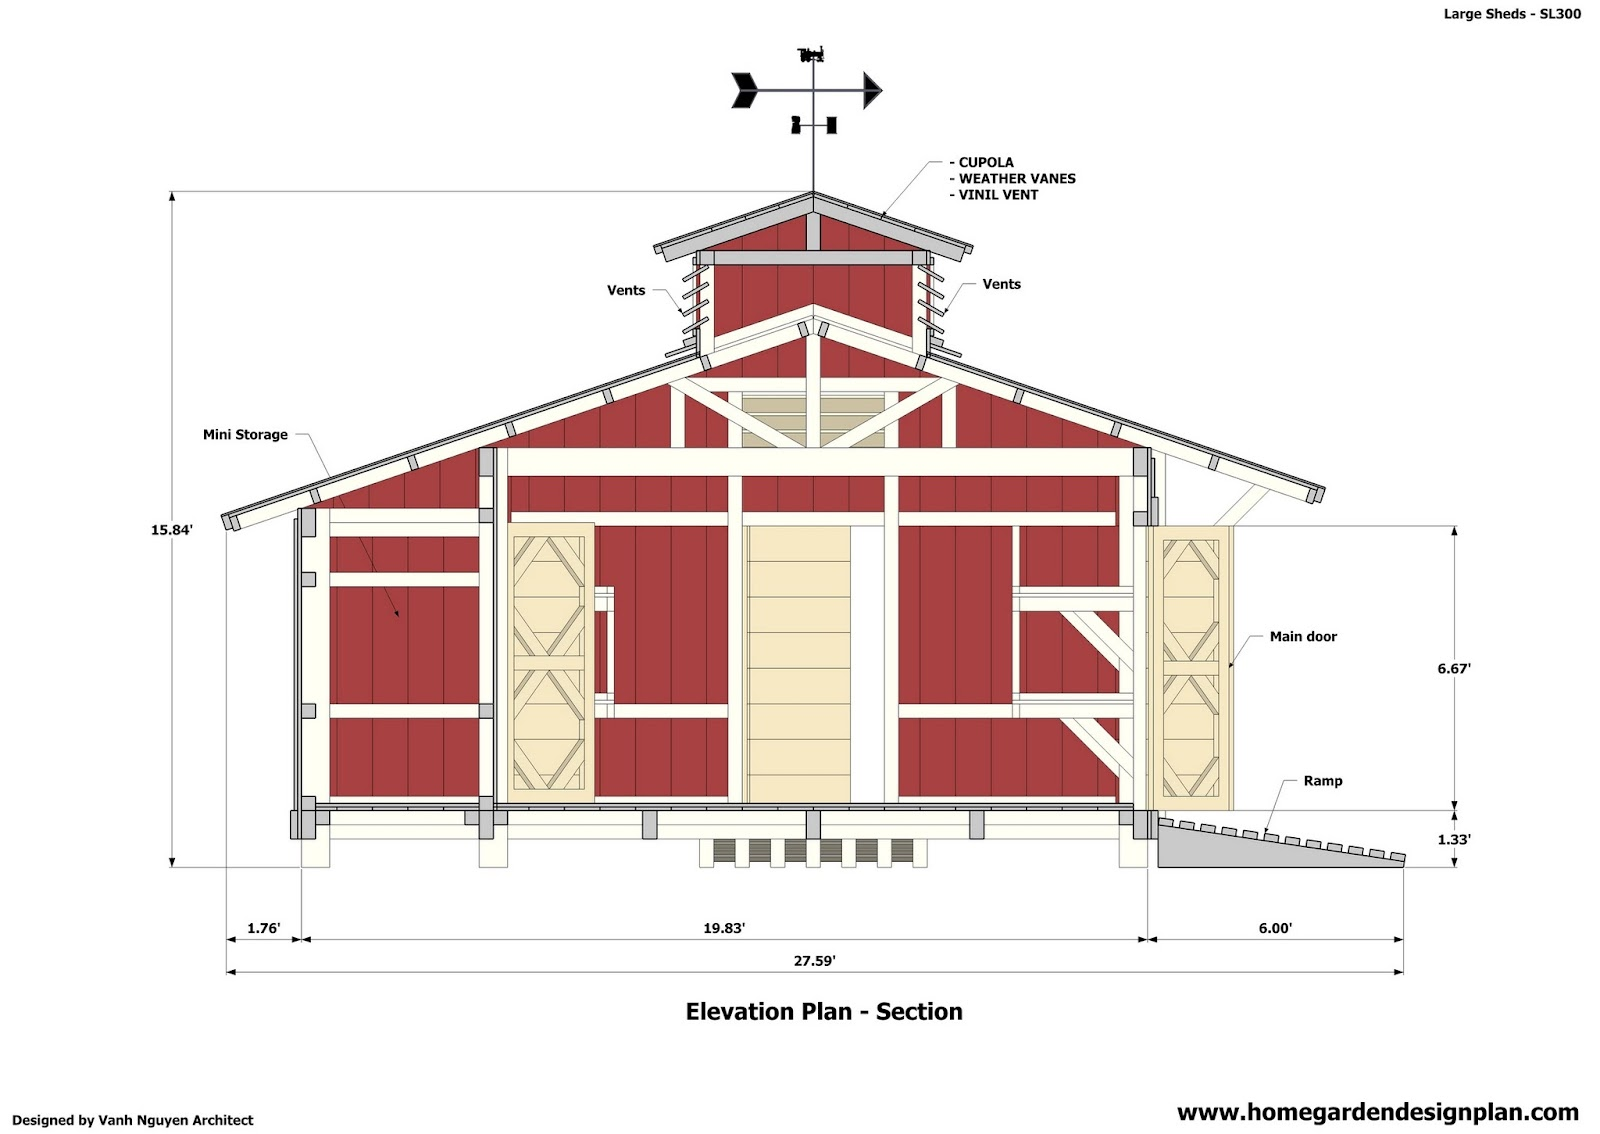 4 by 10 shed plans here nolaya for Free barn blueprints